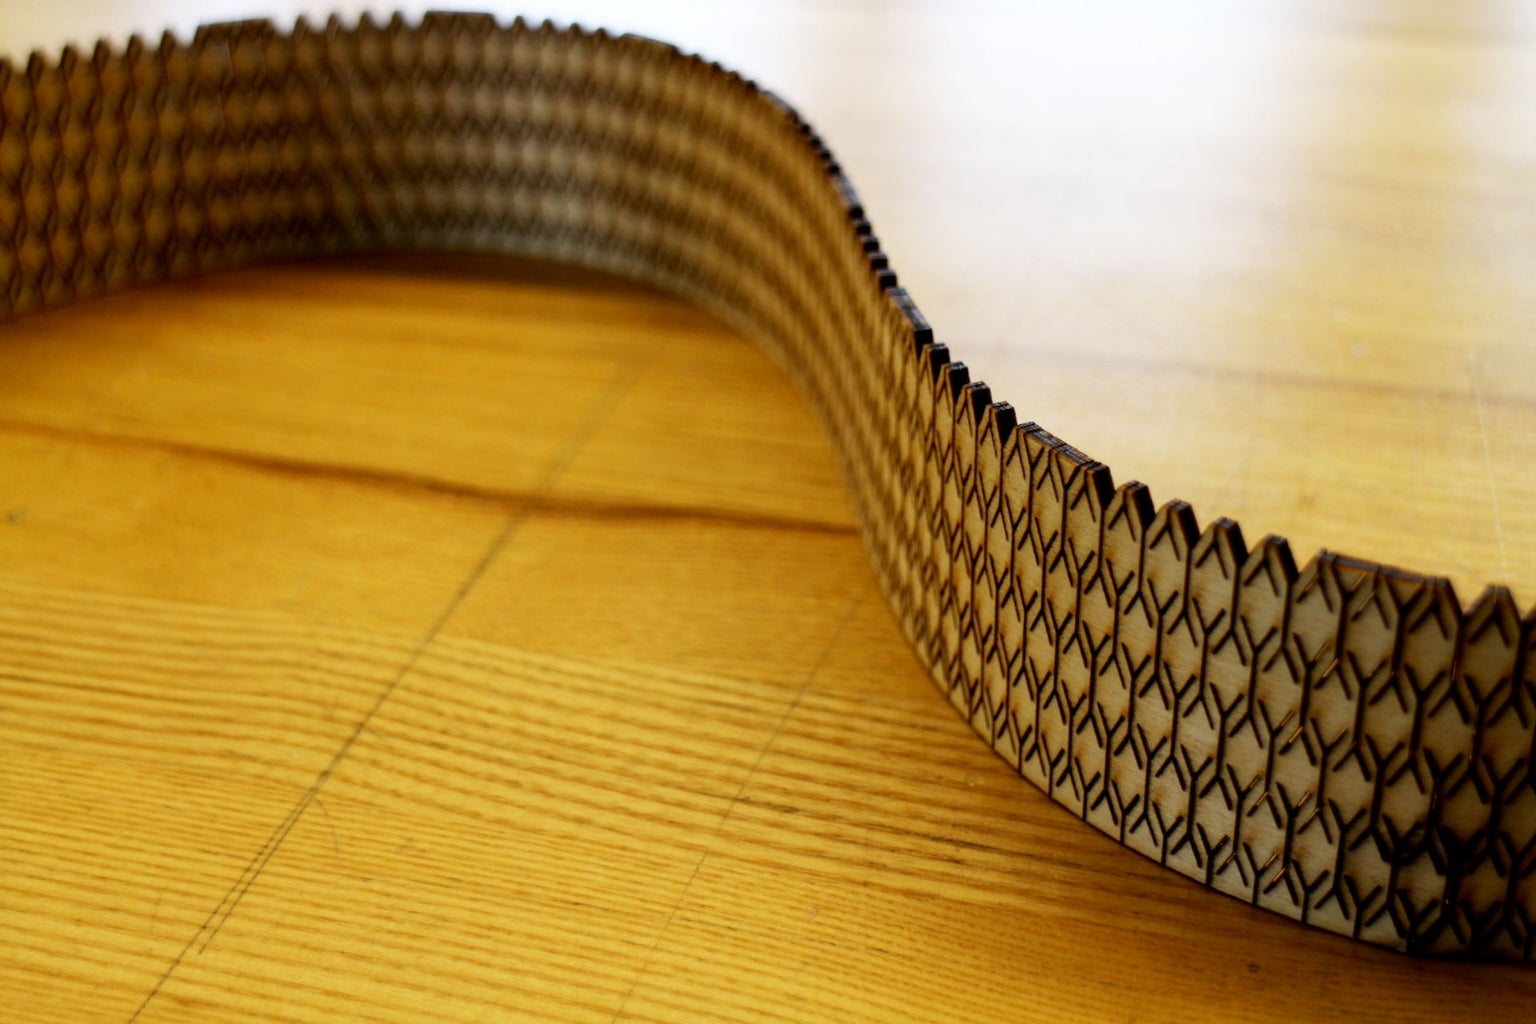 Living Hinges and Flexible Materials